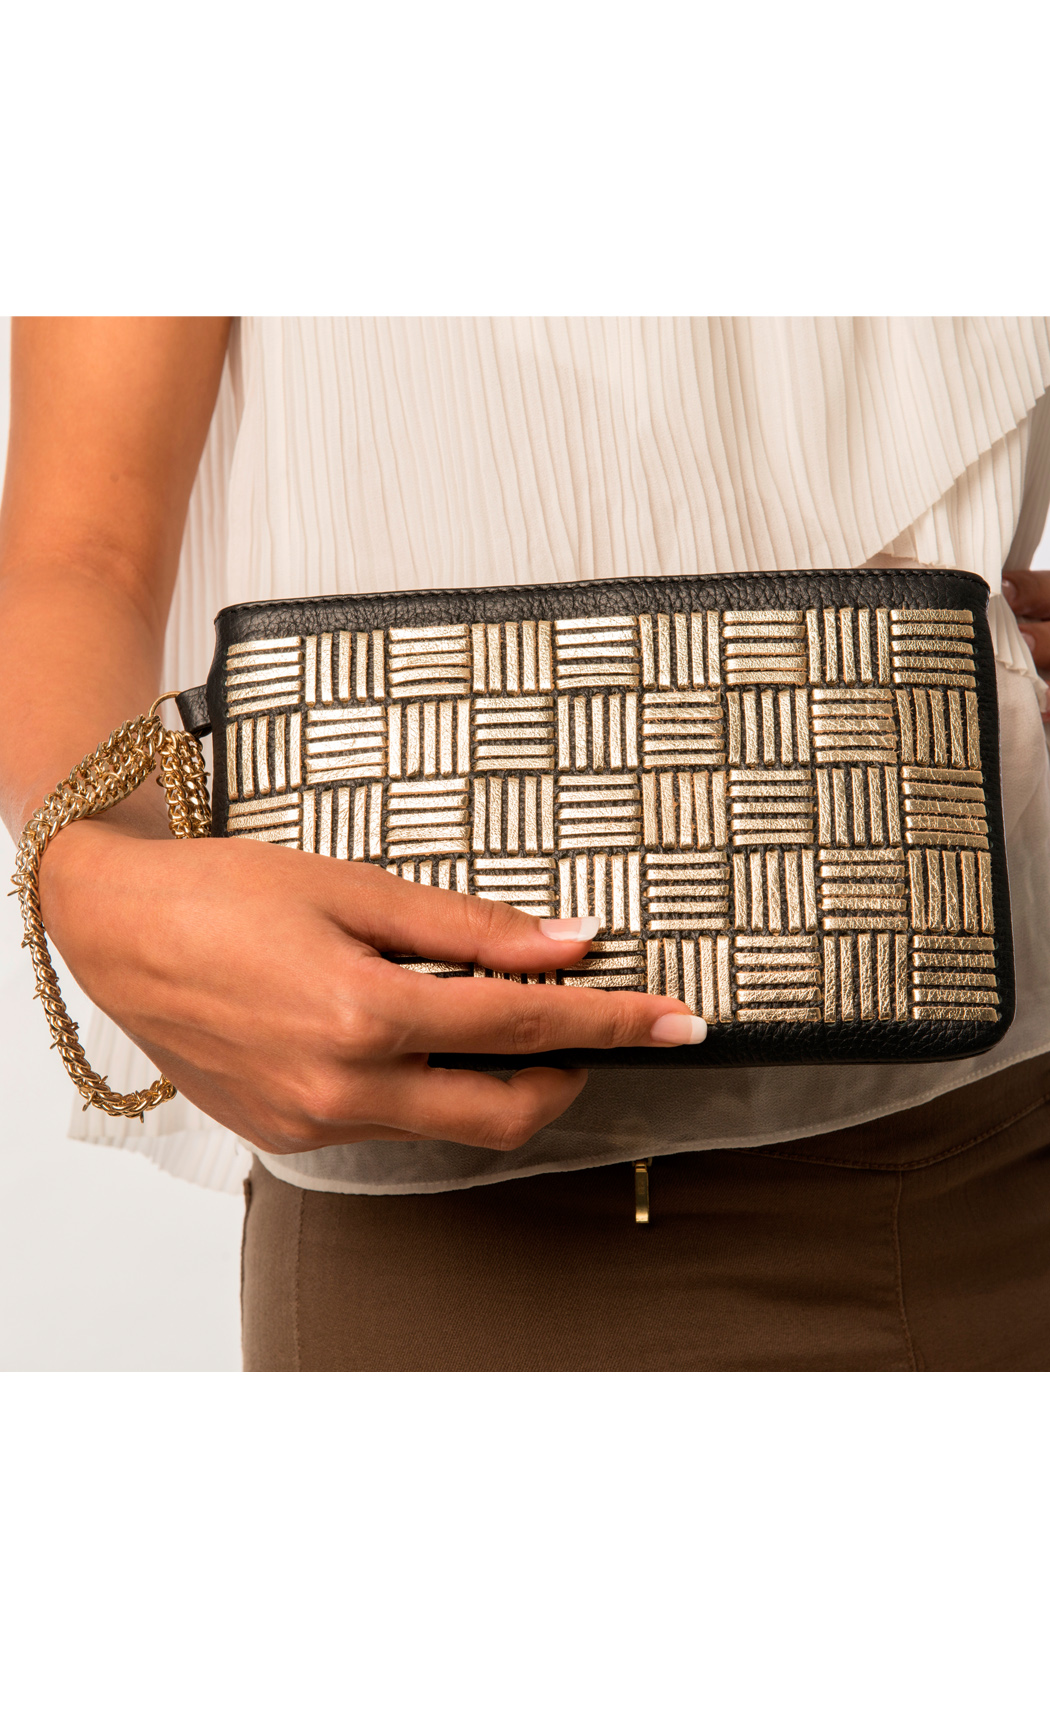 Symphony and Symmetry Two Direction Weave Wristlet in Gold-Black. Buy Online